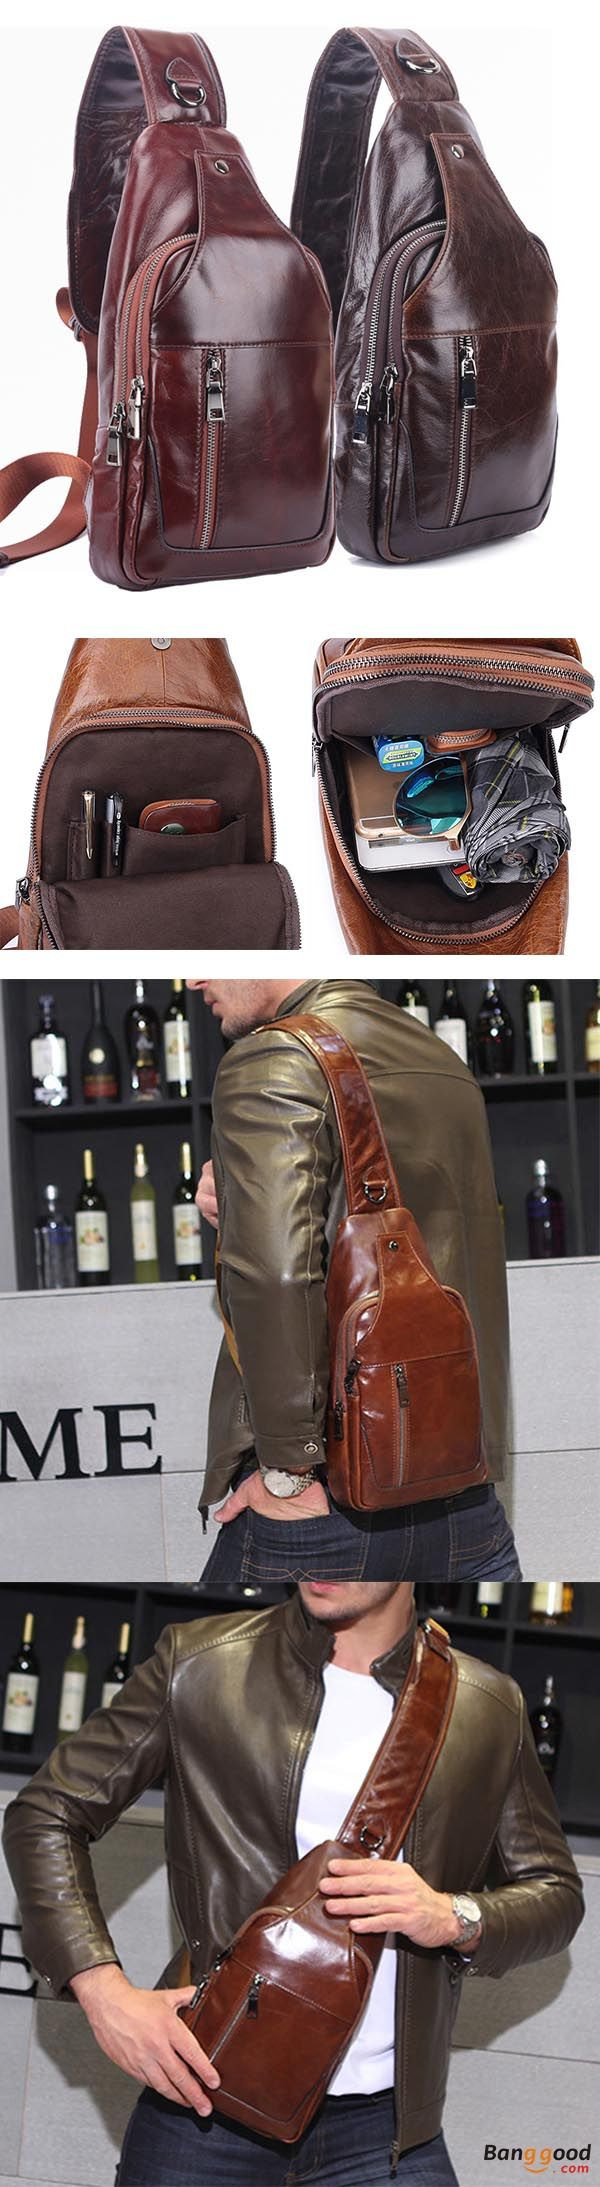 US$59.99 + Free shipping. Men bag, business bag, genuine leather chest bag, shoulder bags, crossbody bags for men. Material: Genuine Leather. Color: Black, Brown, Coffee, Dark Brown, Dark Coffee.